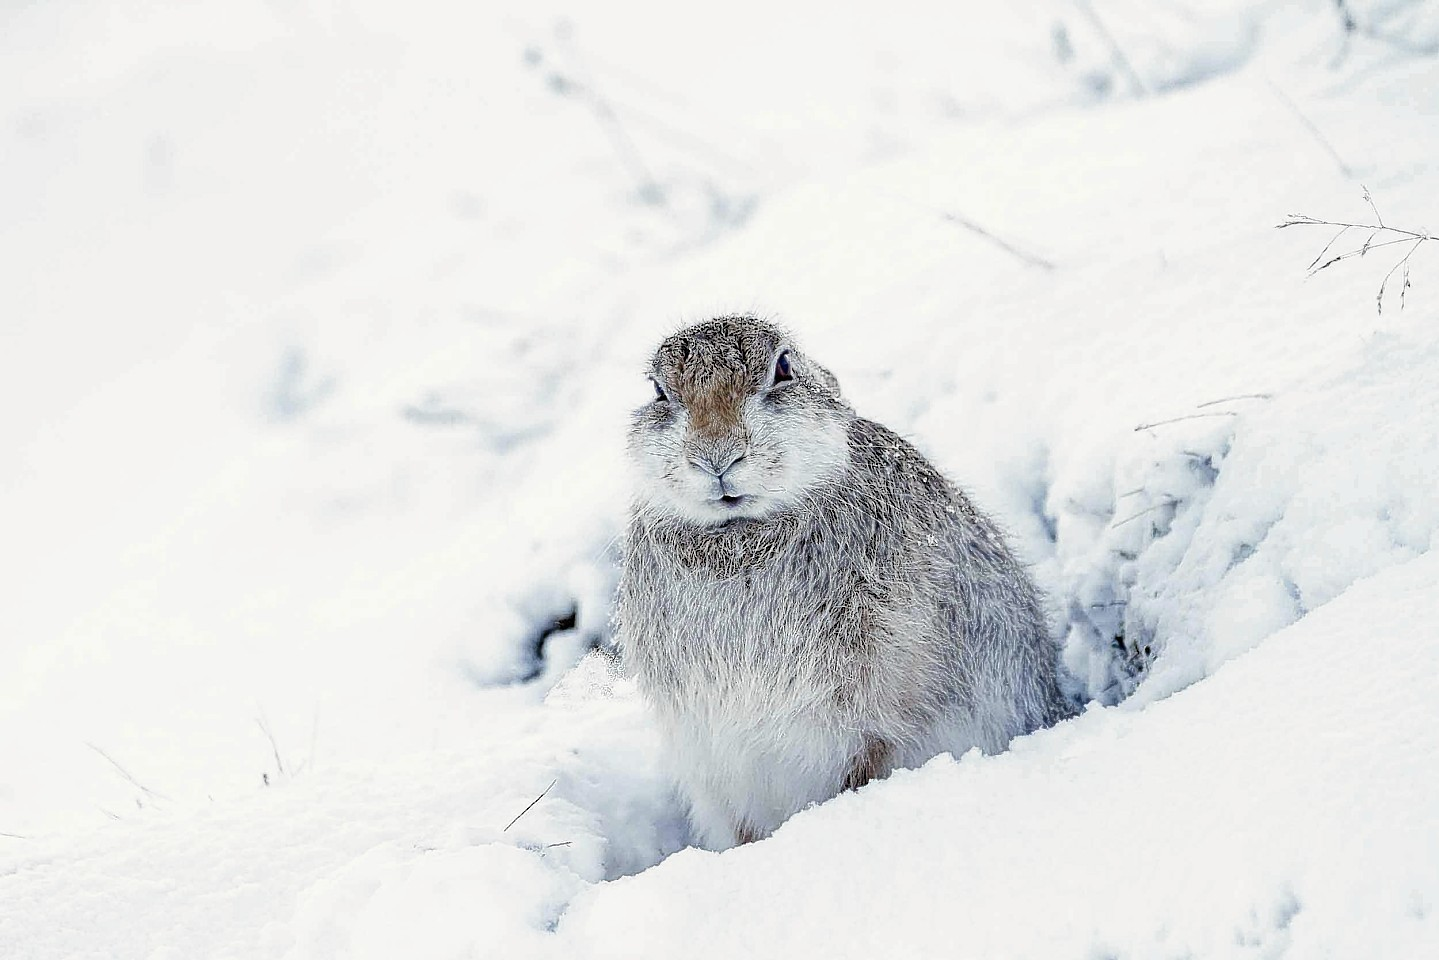 The mountain hare braves the chill